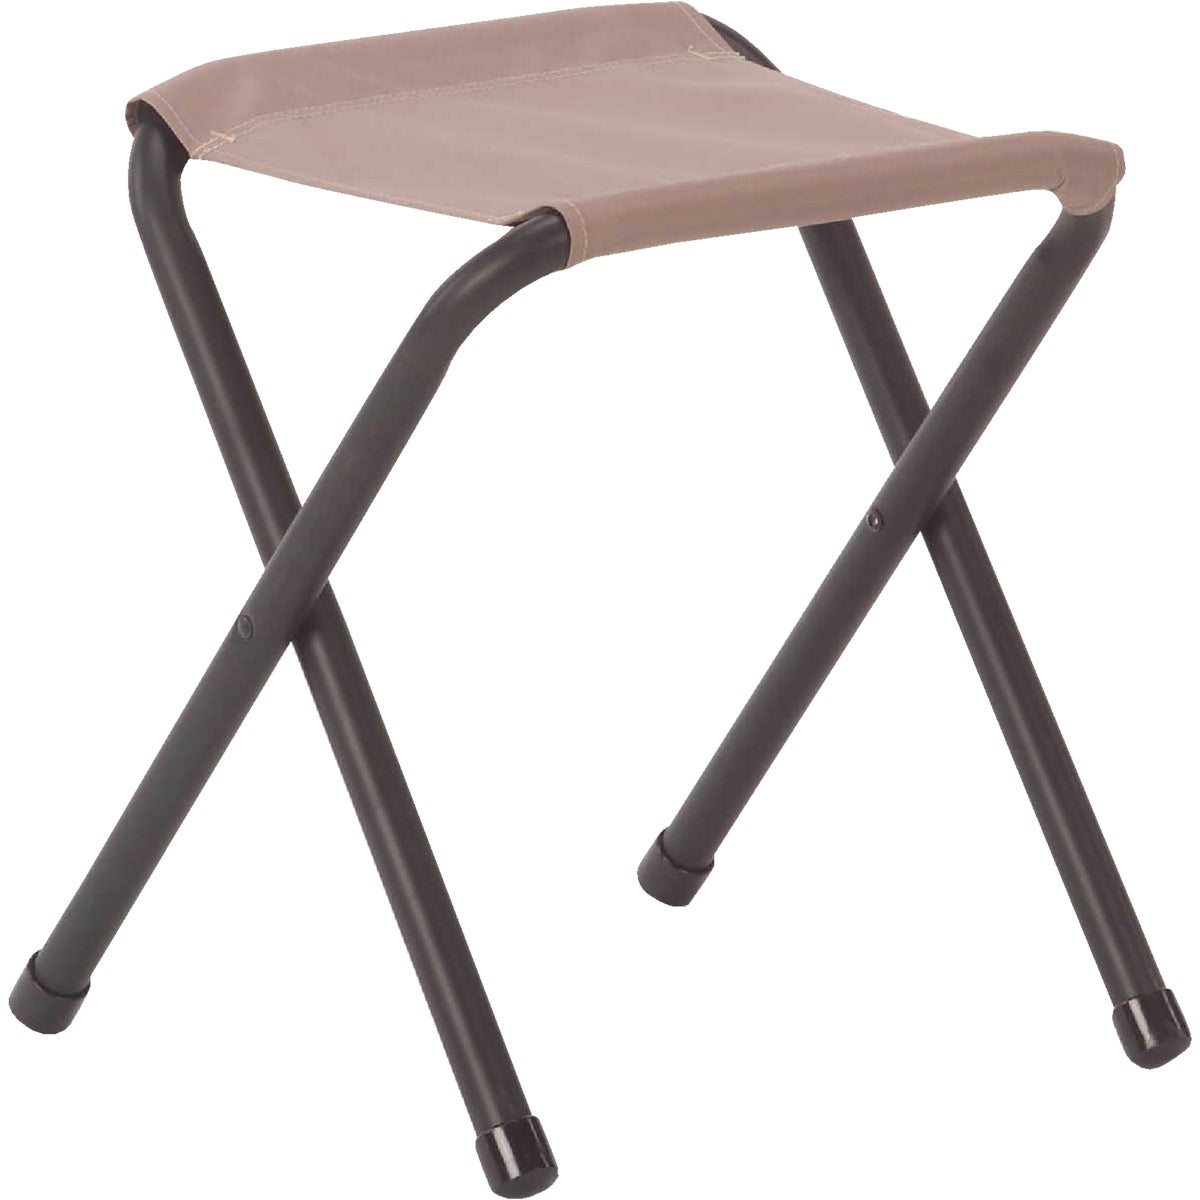 CAMP STOOL - 50370 by Academy Broadway Cor